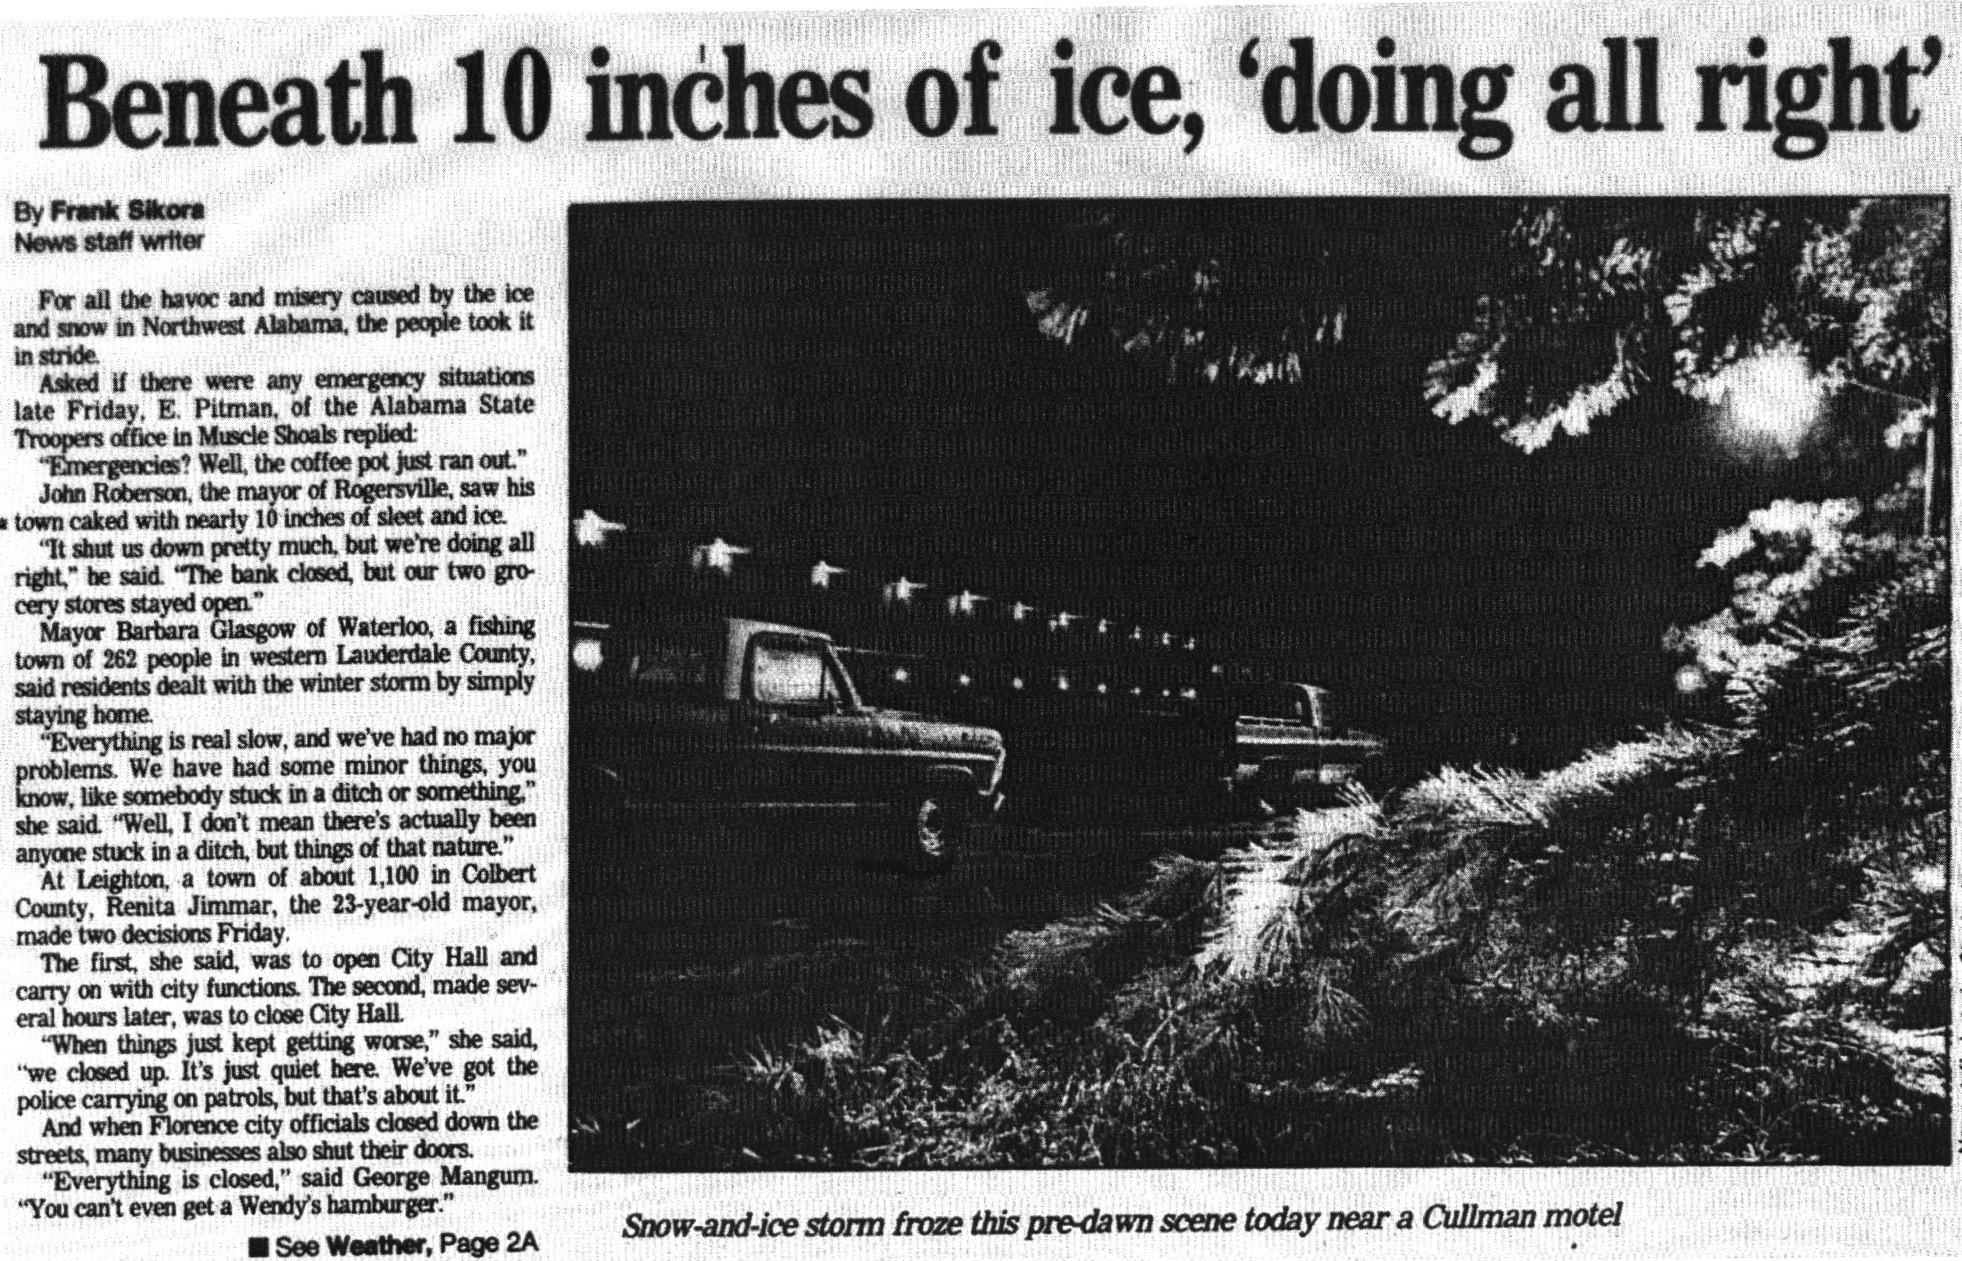 The 1985 Northwest Alabama Winter Storm